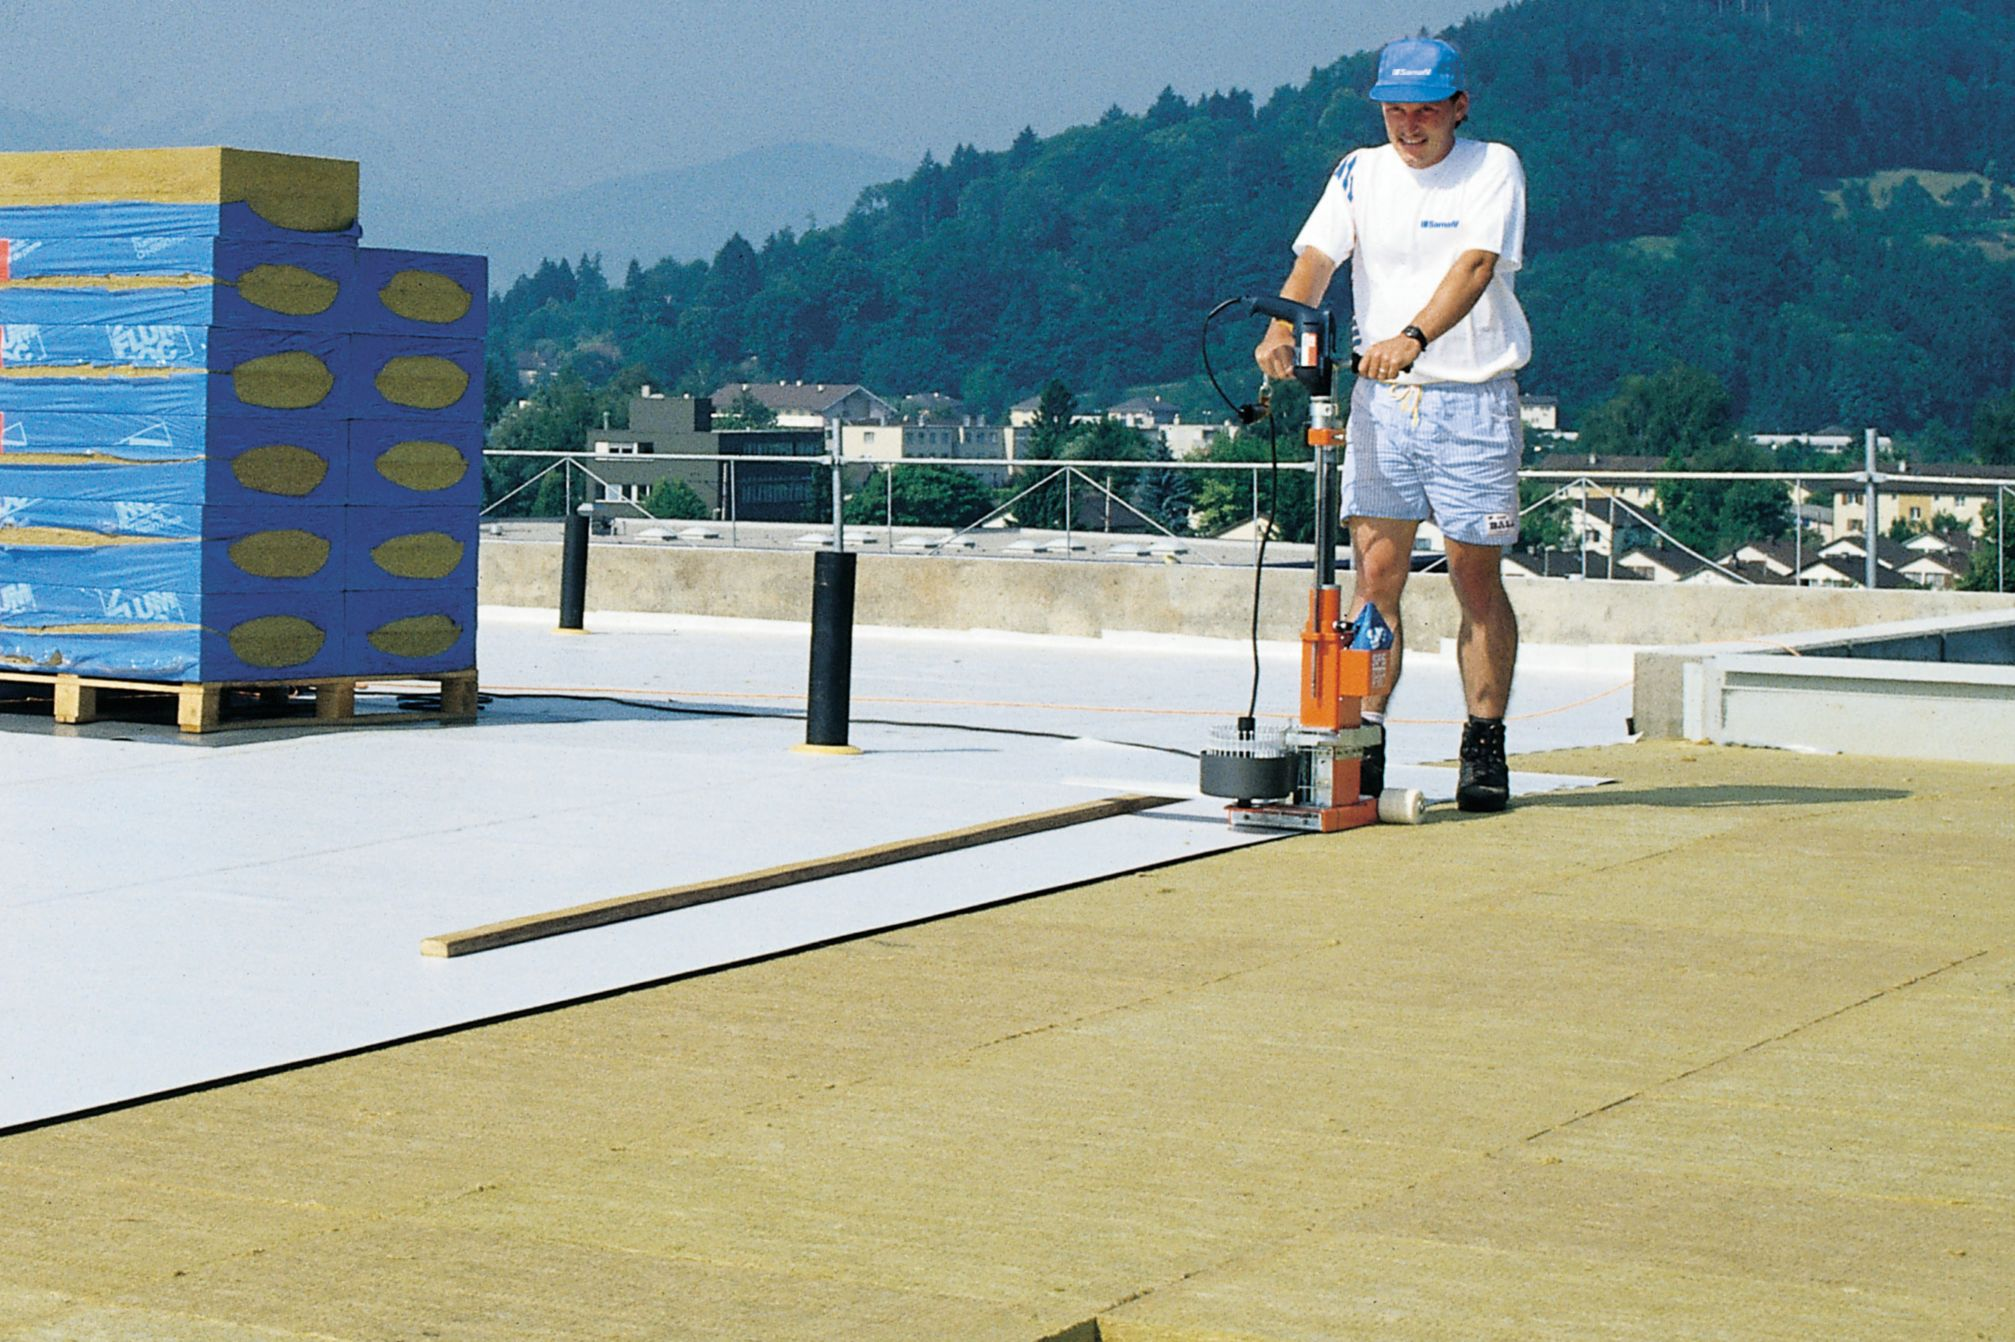 Man installing thermal insulation with a machine